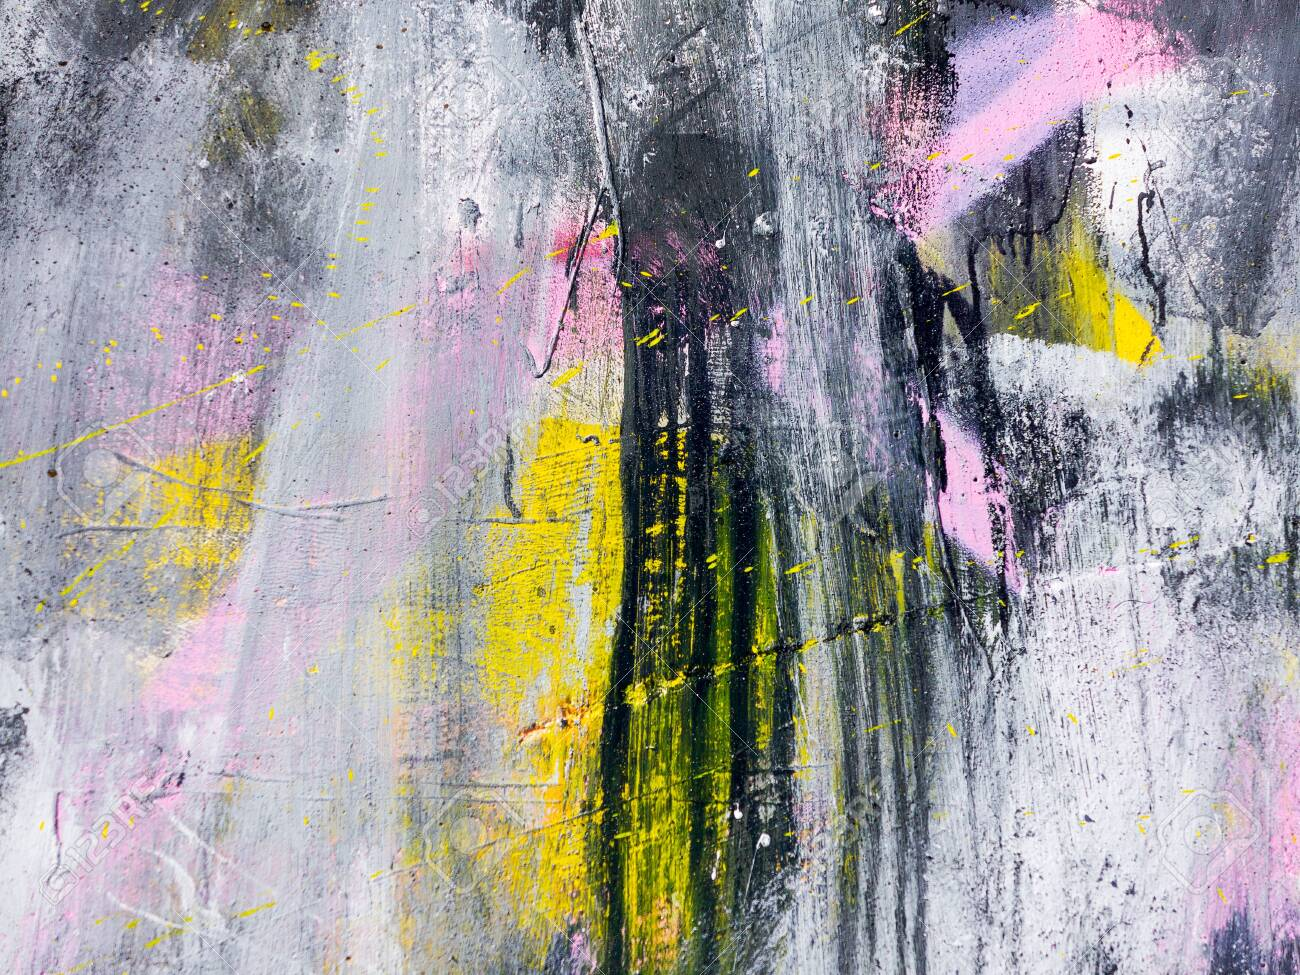 Rough Paint Dripping Spray Paint Artwork Abstract Background